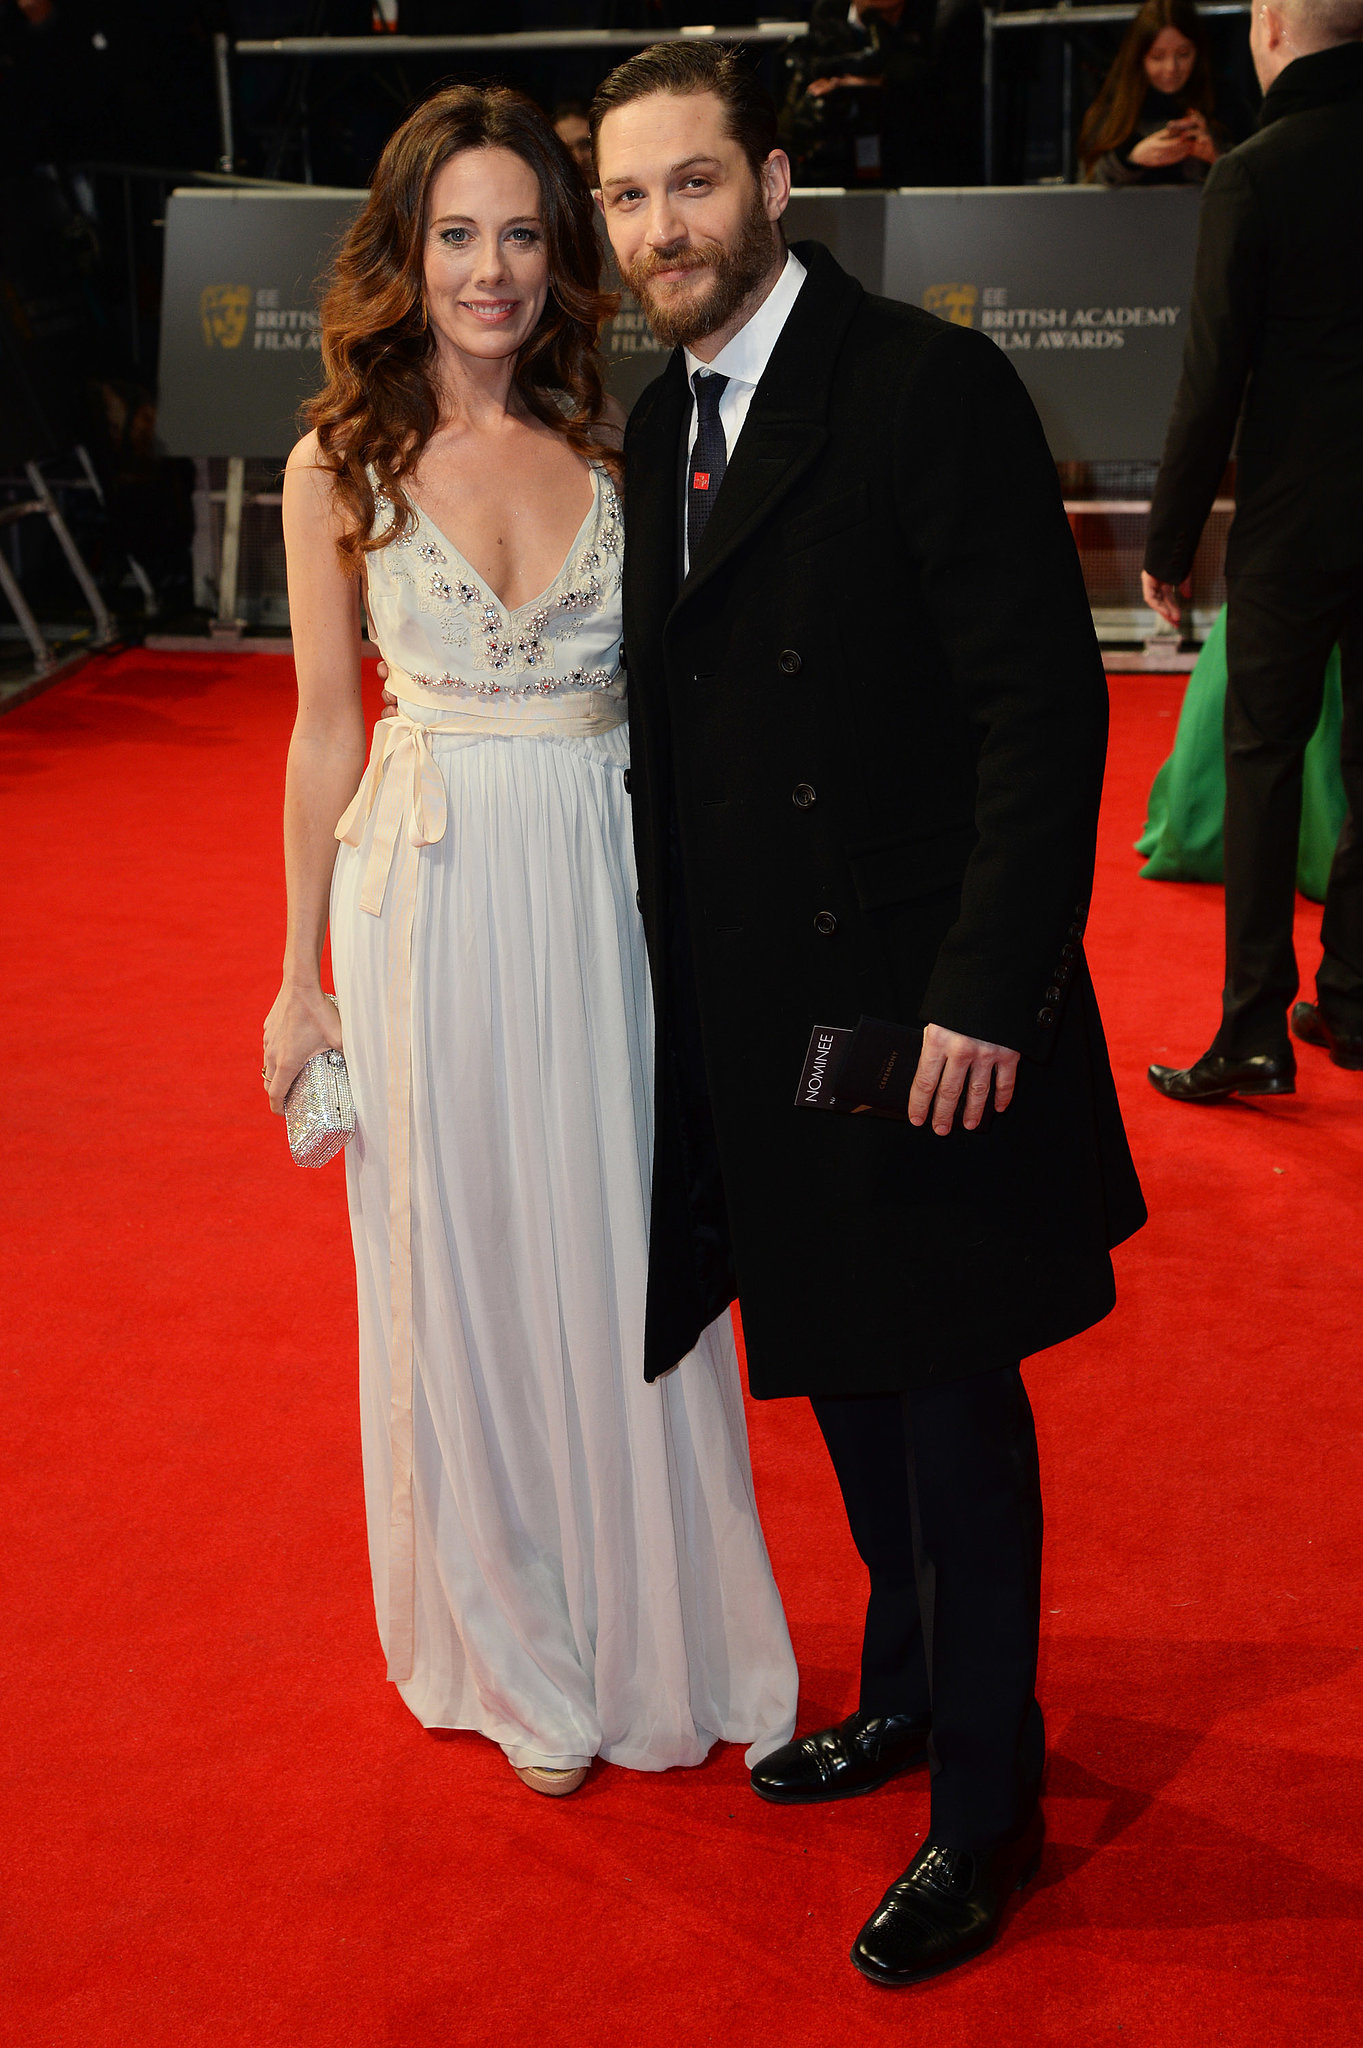 Tom Hardy and Kelly Marcel at the 2014 BAFTA Awards.